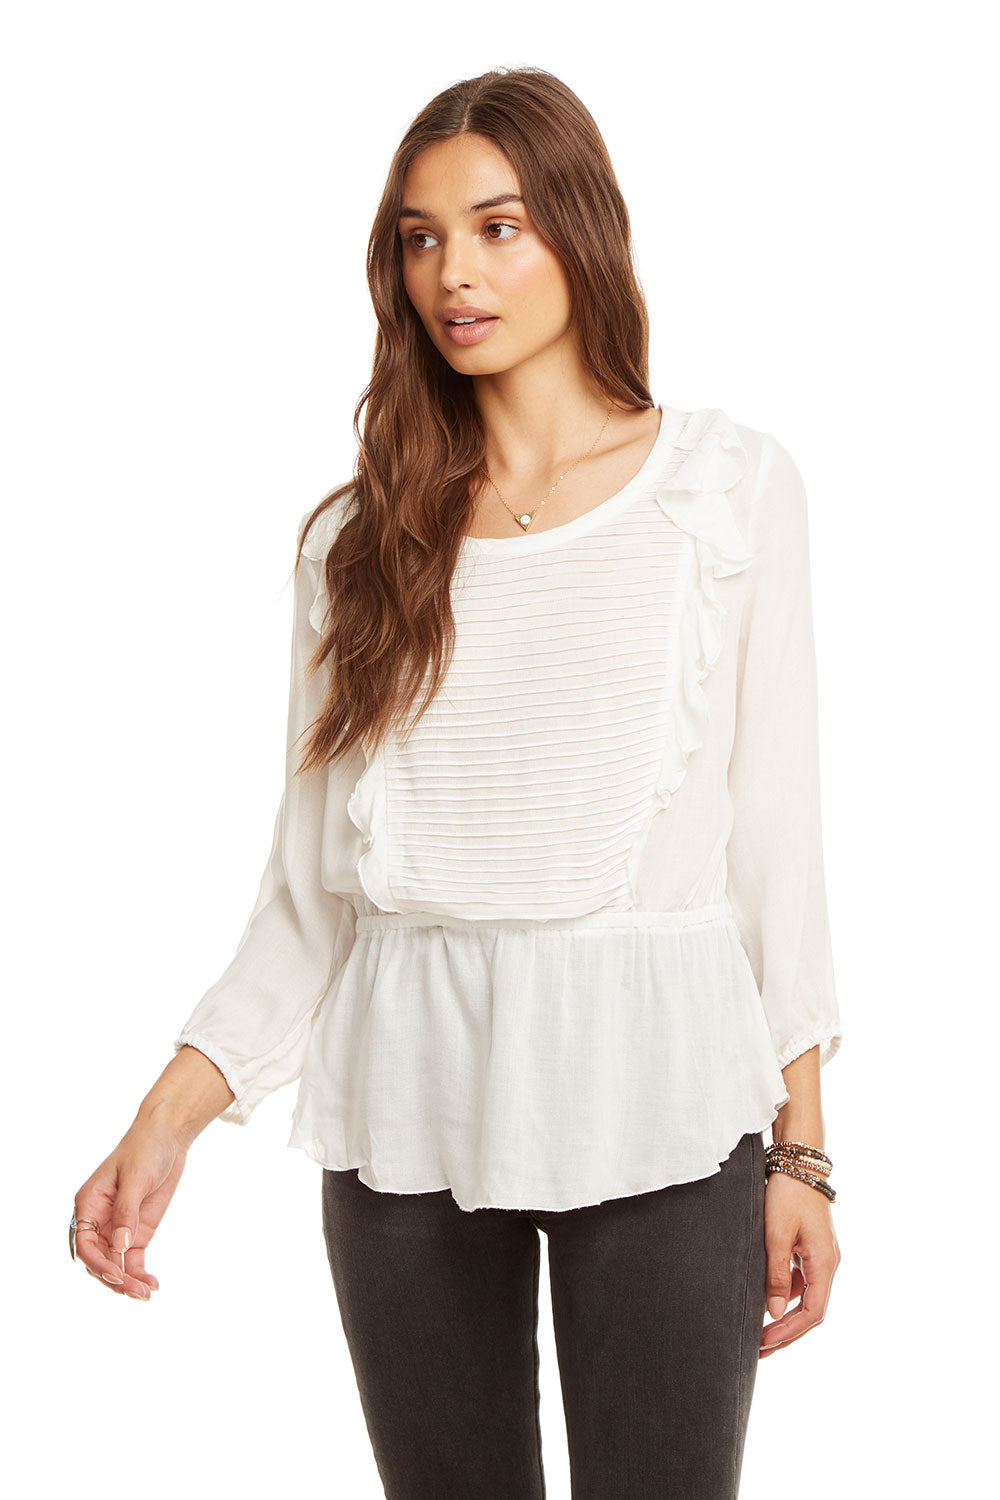 Gauze Ruffle Pintuck Peplum Top, WOMENS, chaserbrand.com,chaser clothing,chaser apparel,chaser los angeles